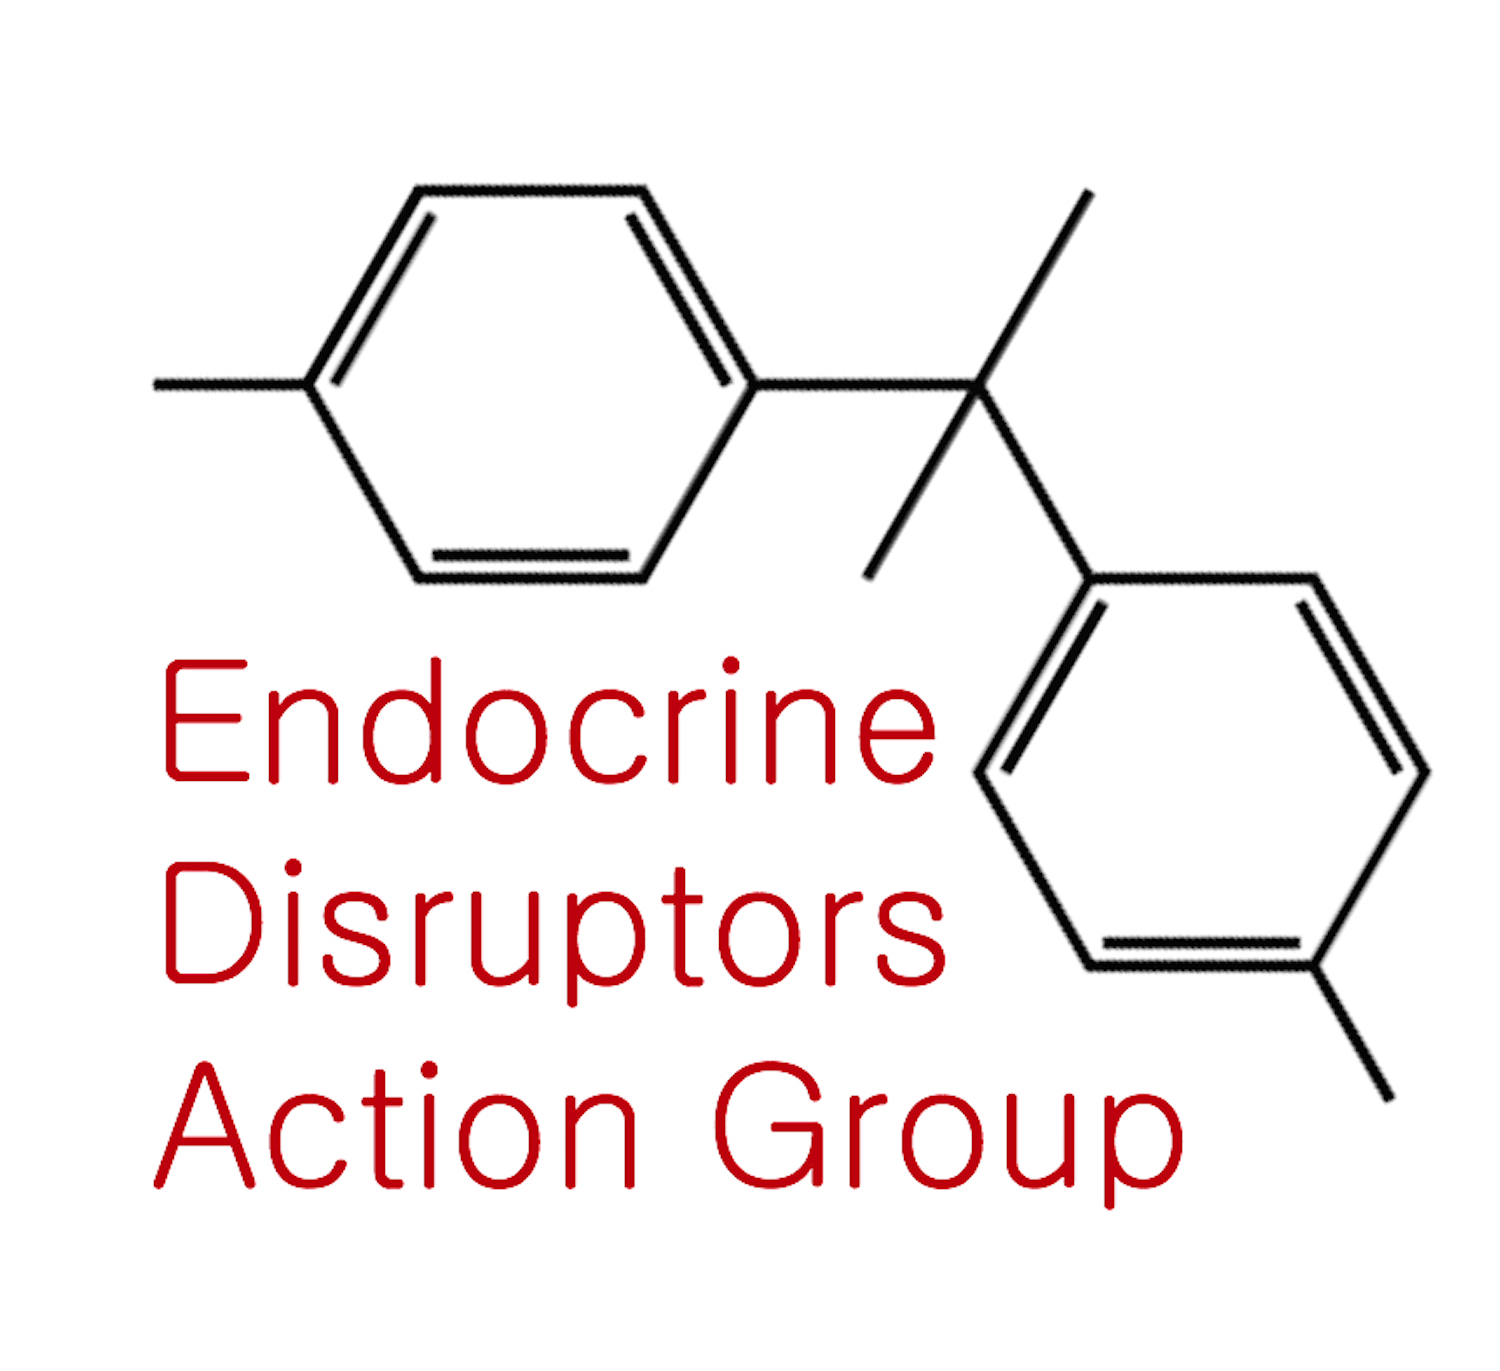 Endocrine Disruptors Action Group Technoscience Research Unit